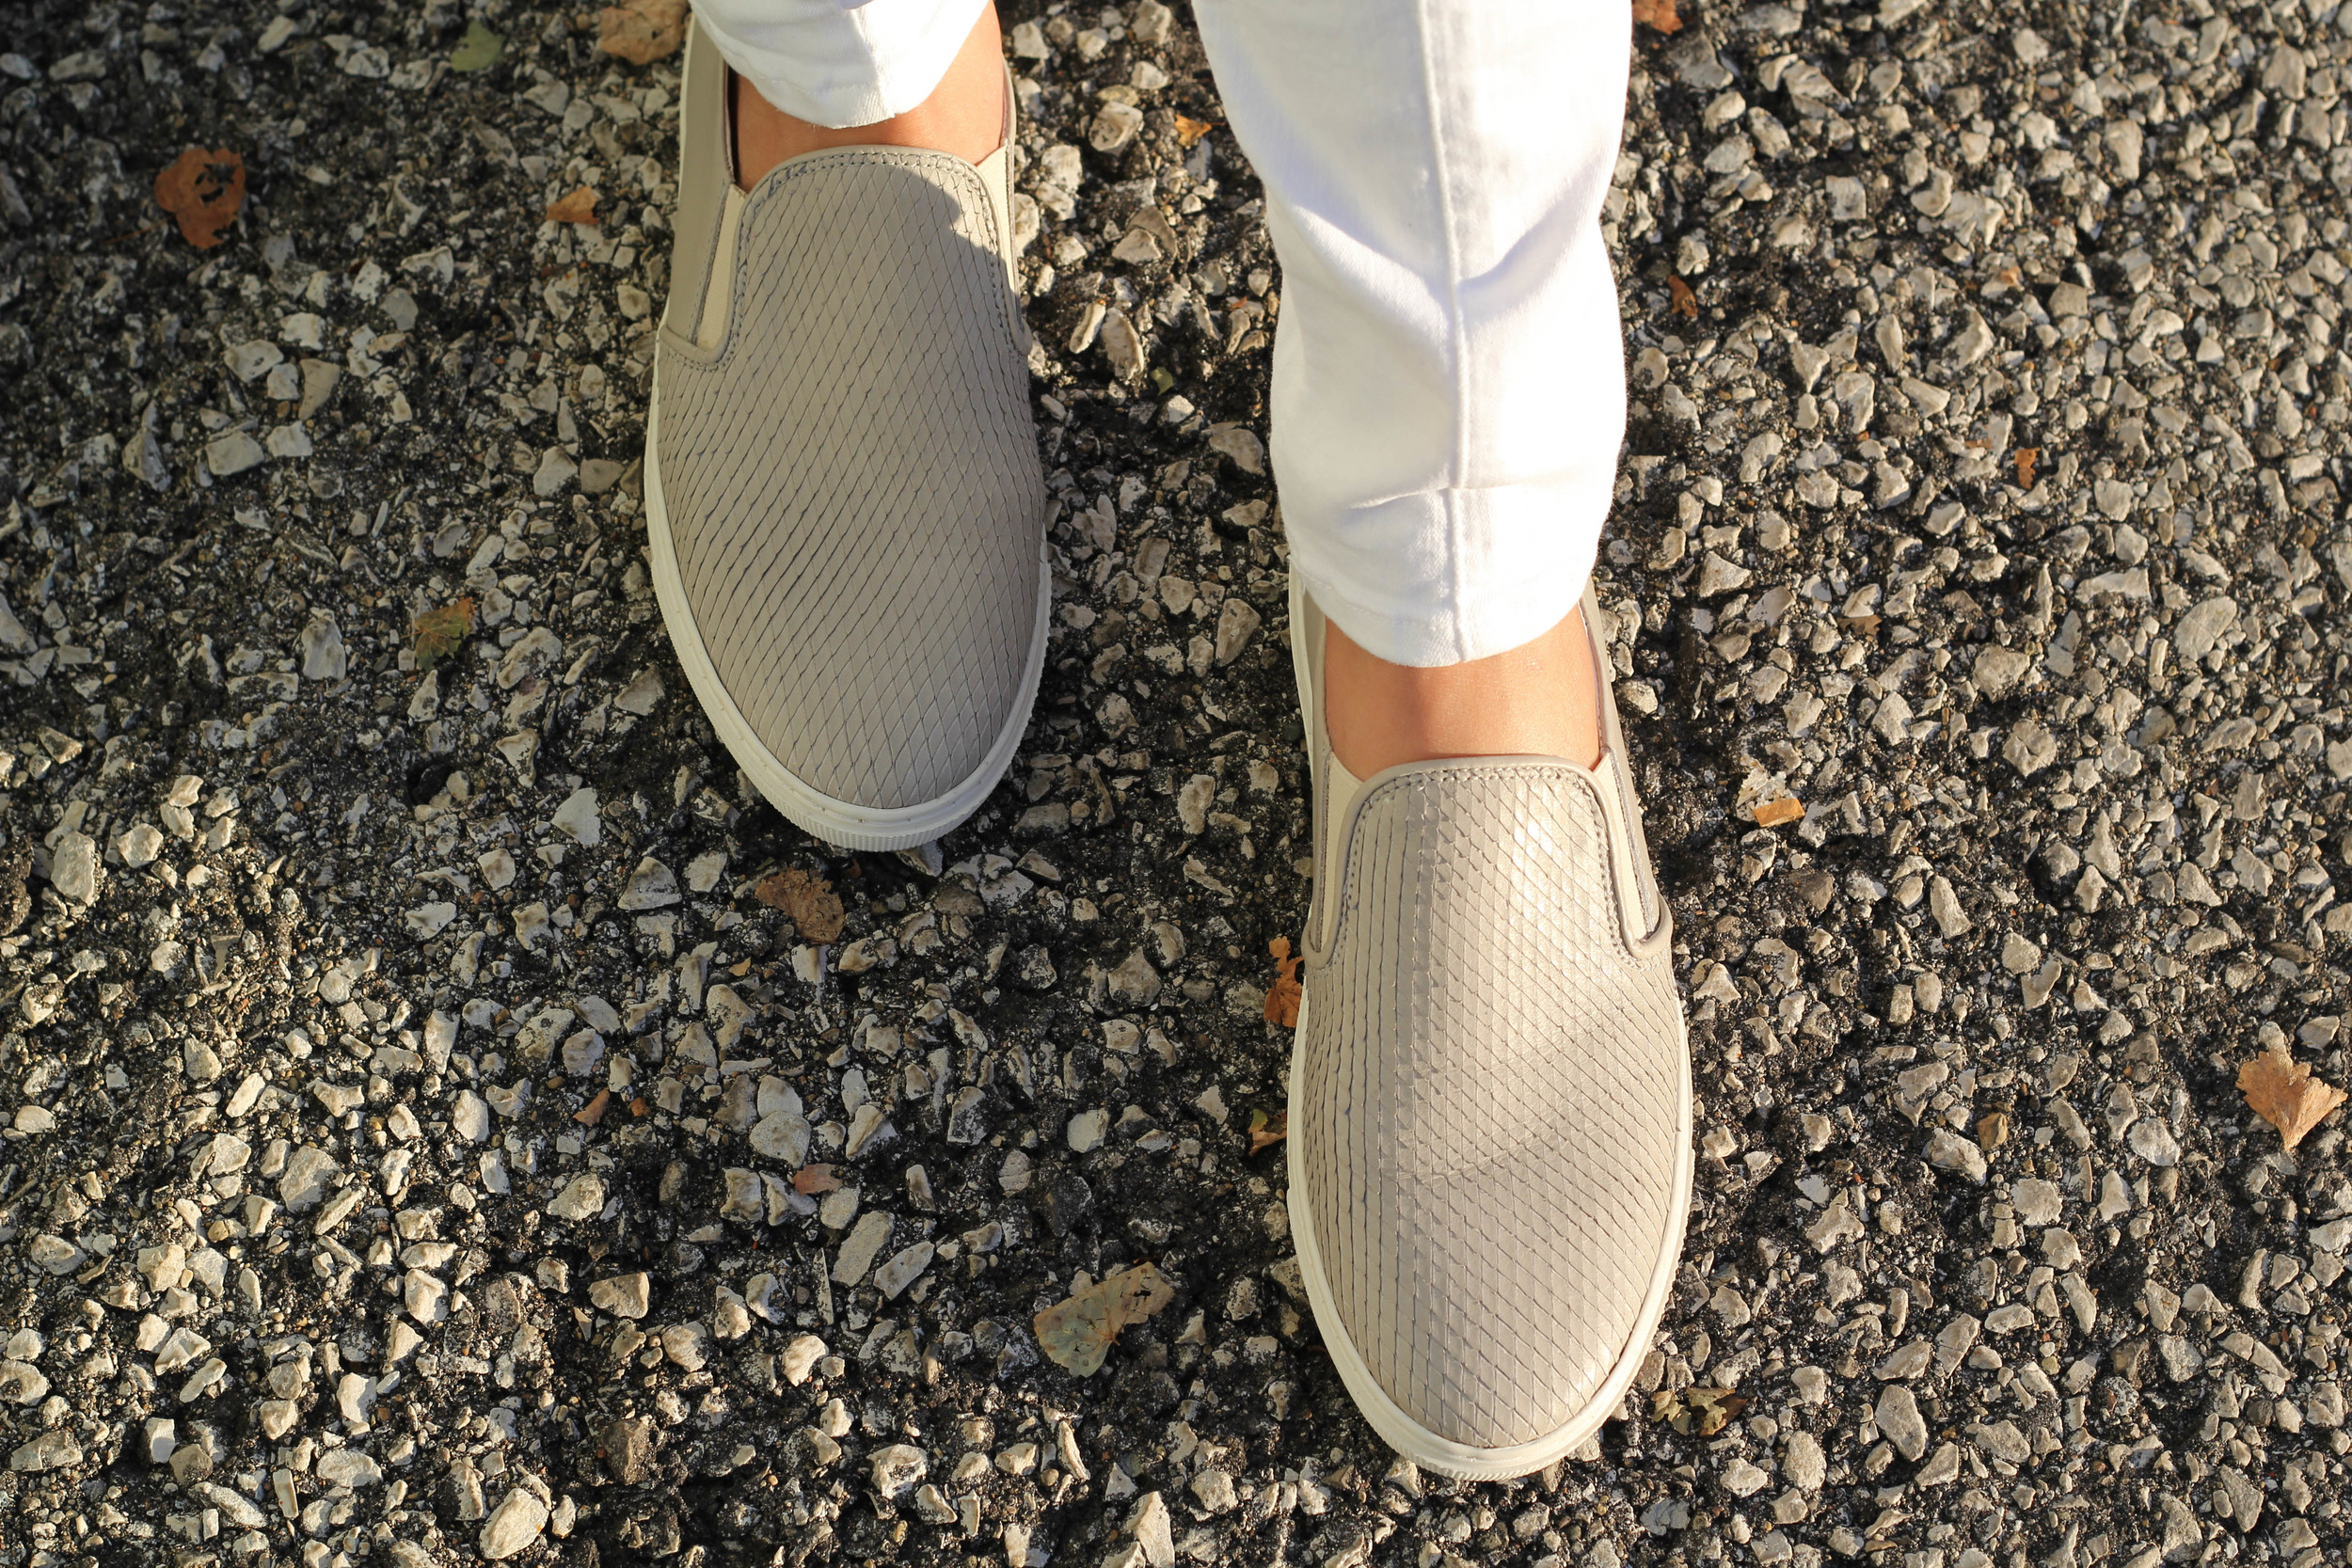 And finally, the last detail I have to share! These snake textured slip-ons from O'Moda basically walked off the shelf with me when I left the store in The Netherlands. These are one of my favorite pairs of shoes because besides their color that matches with basically everything, they still have a cool and interesting texture. They are chic and comfortable, something you don't find very often!